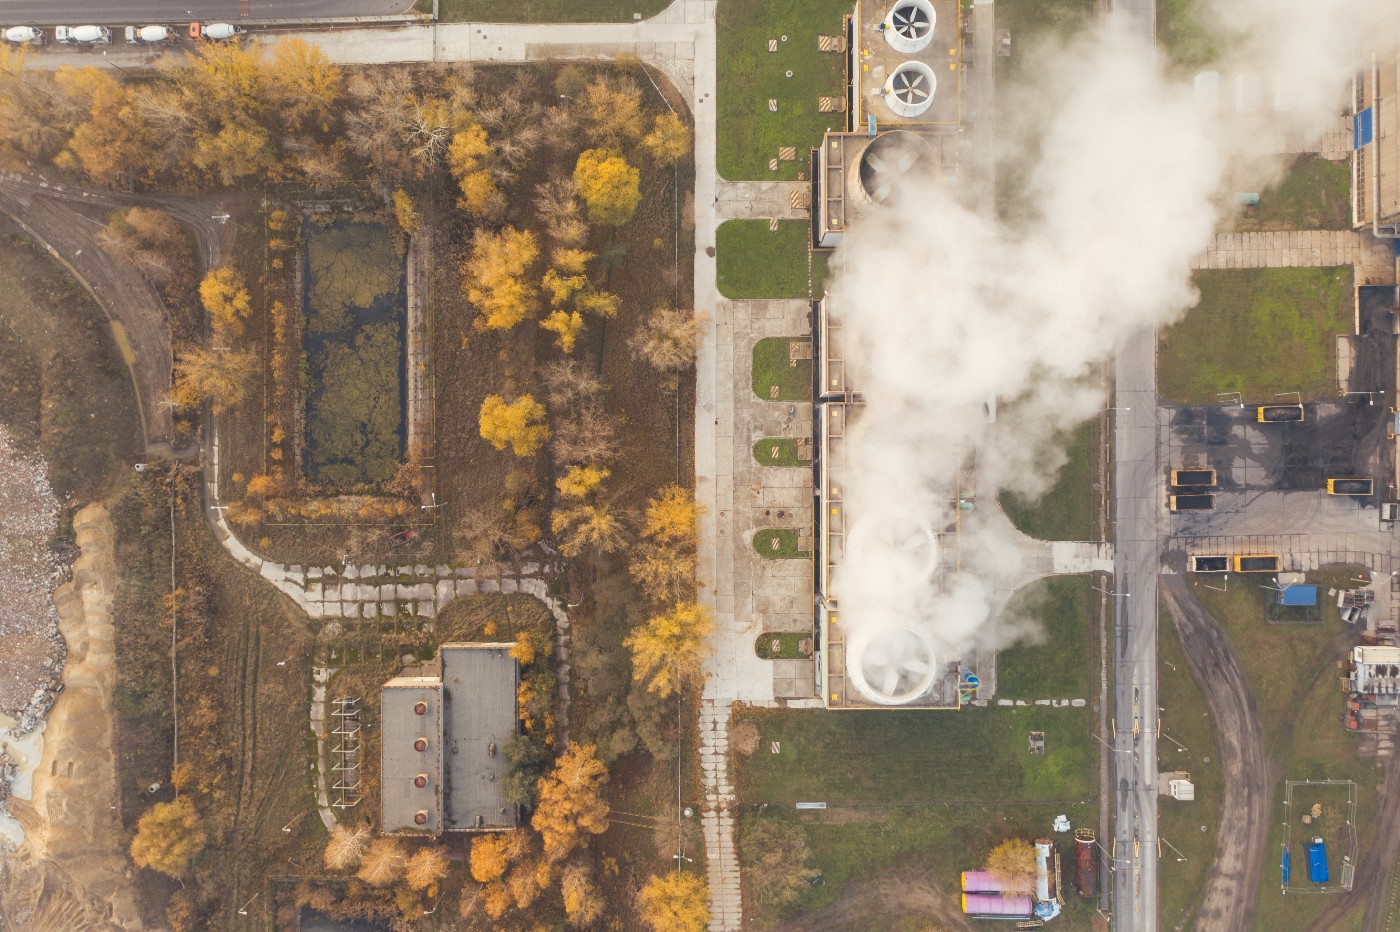 A bird's eye view of a large factory area with white smoke coming out of the chimneys.